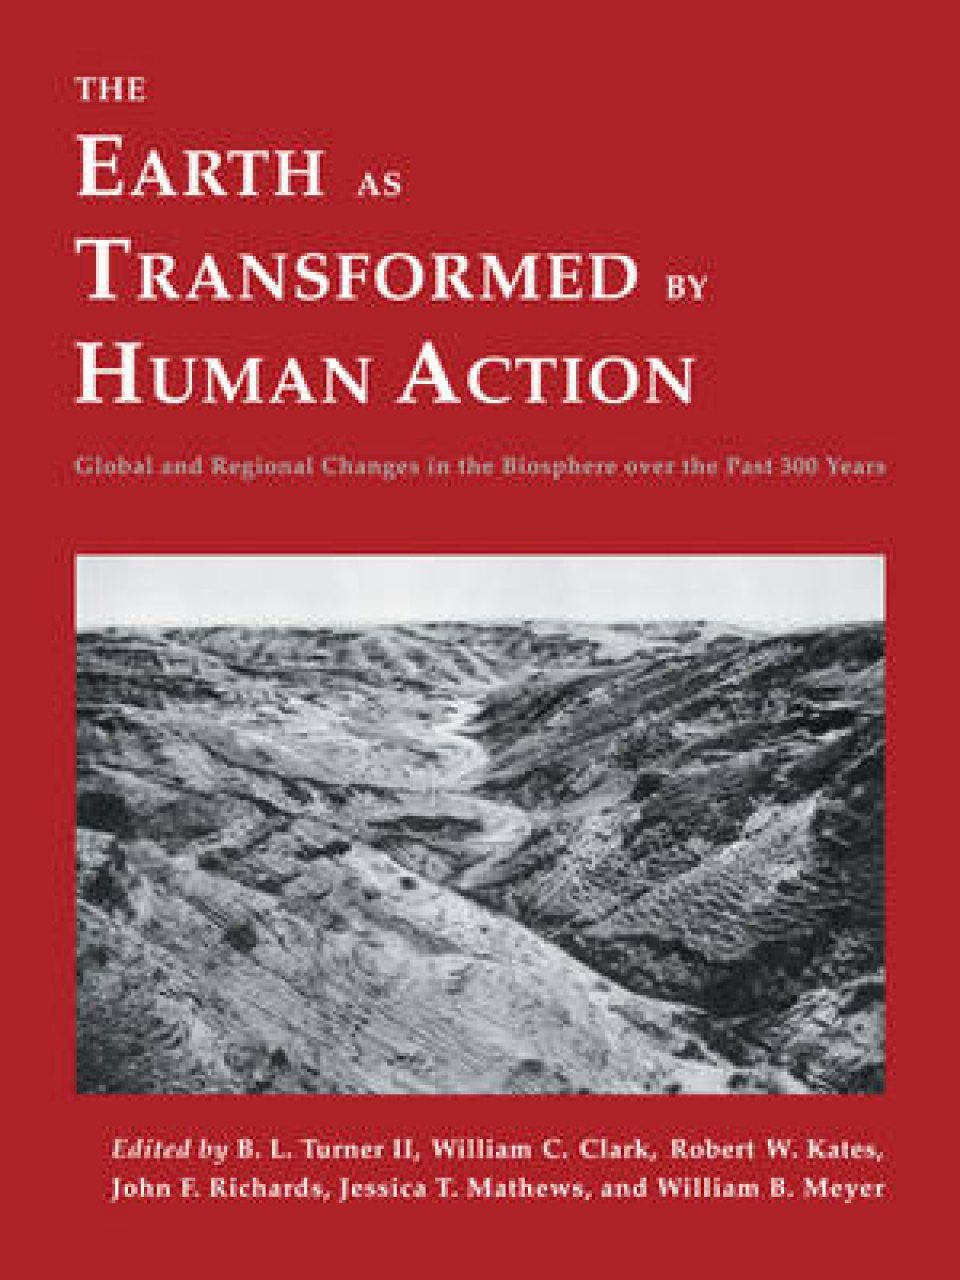 The Earth as Transformed by Human Action